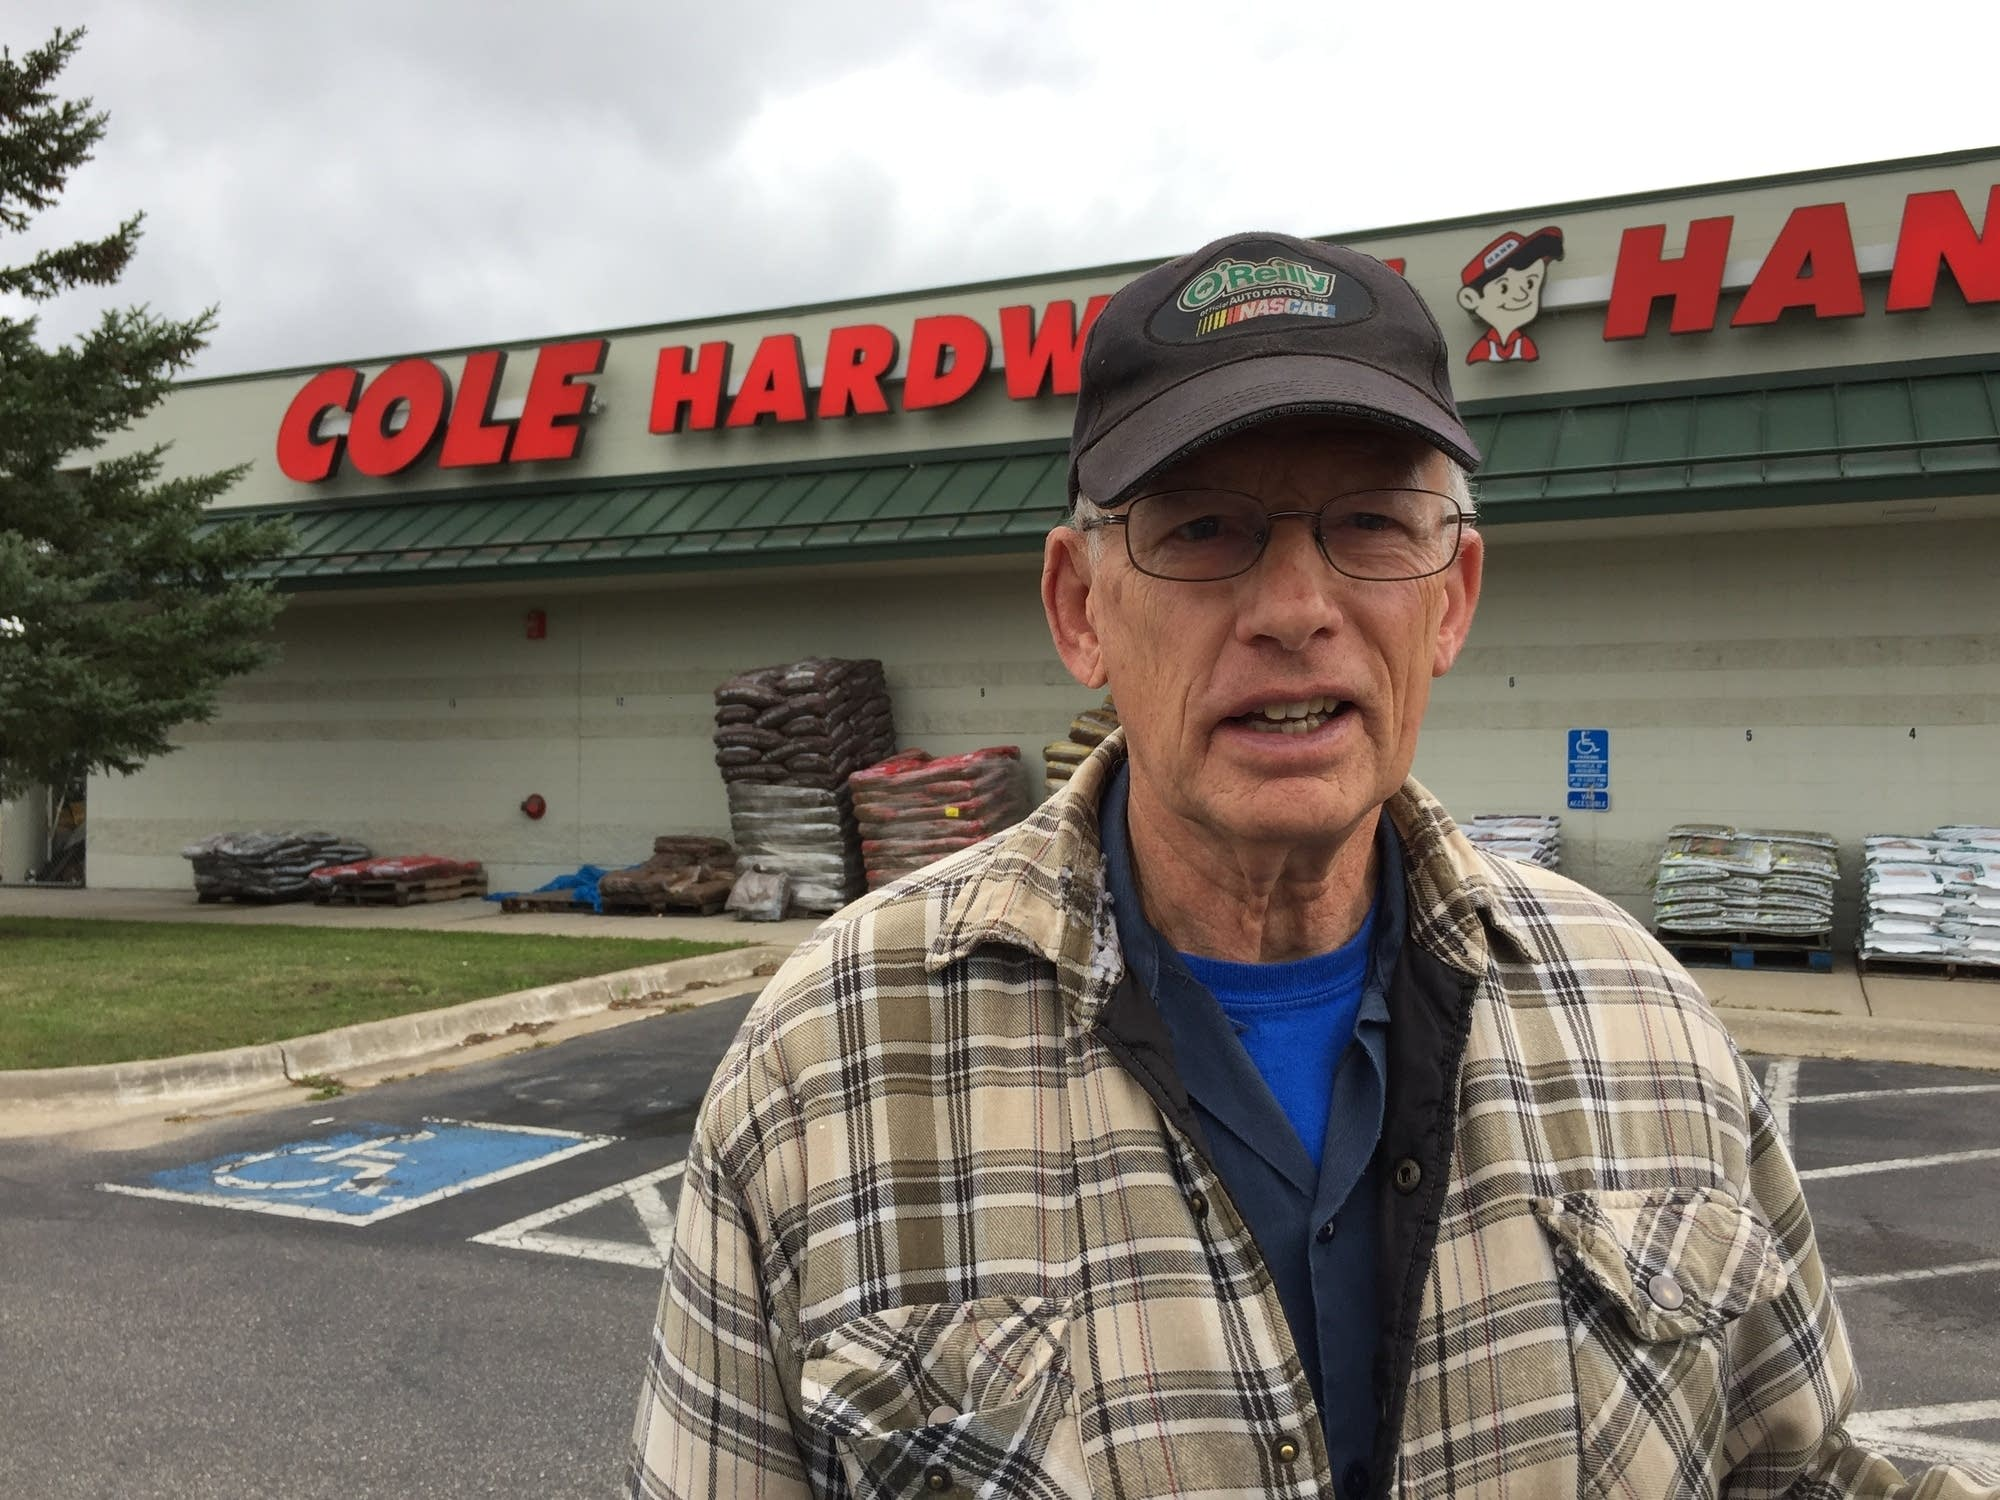 74-year-old Everette Kingsley, from nearby Hill City.